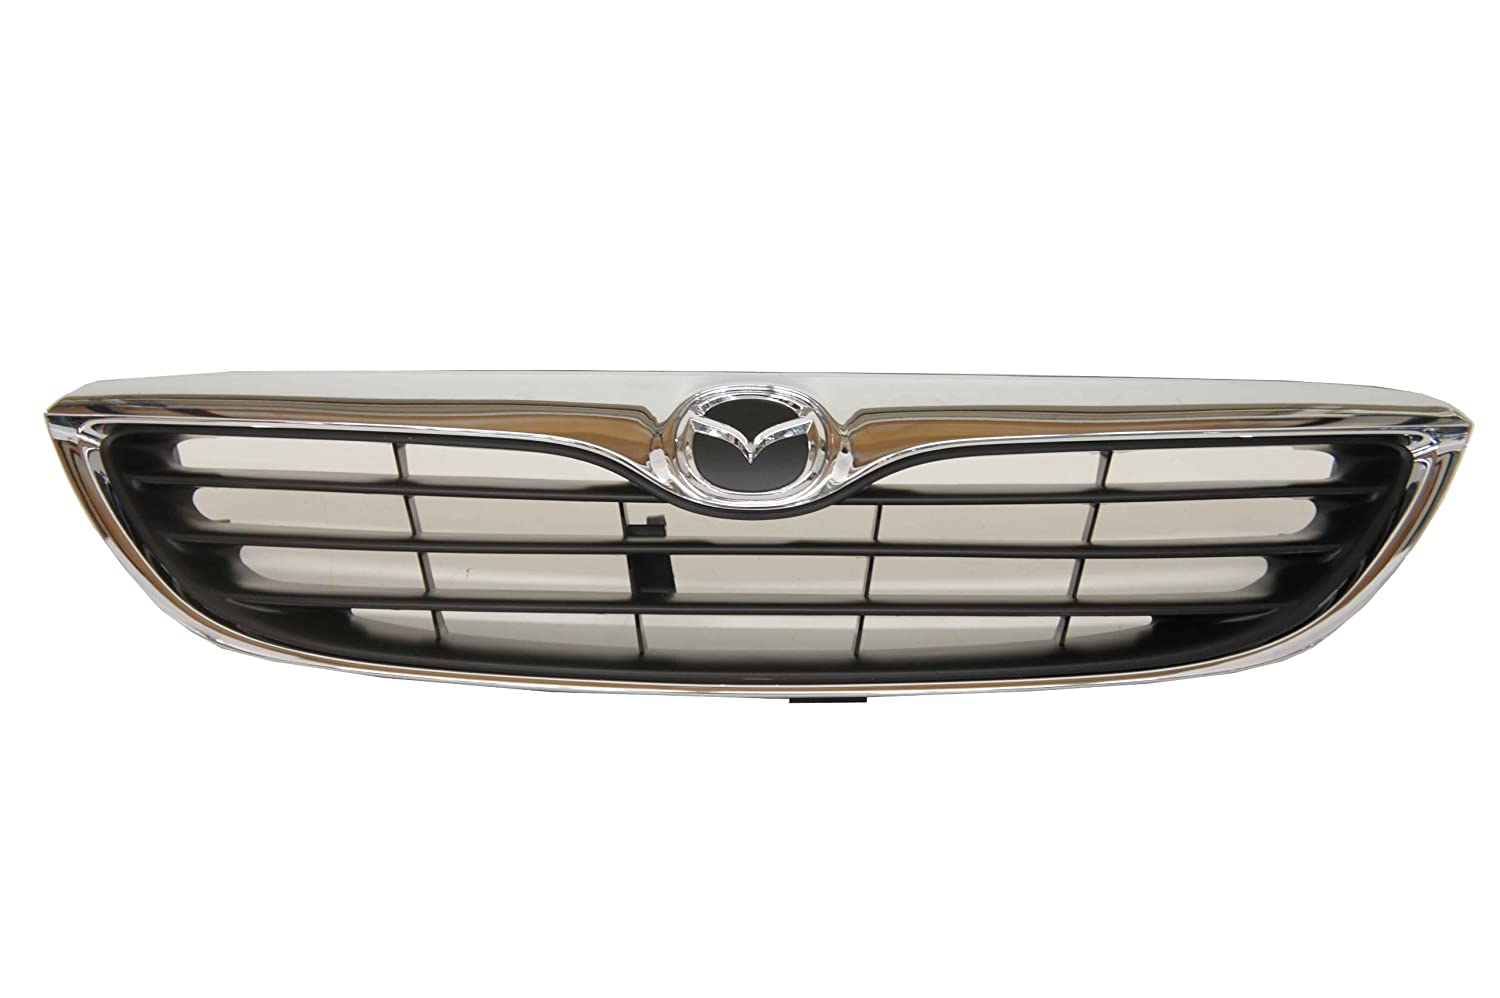 Genuine Mazda Parts GD7A-50-710C Grille Assembly